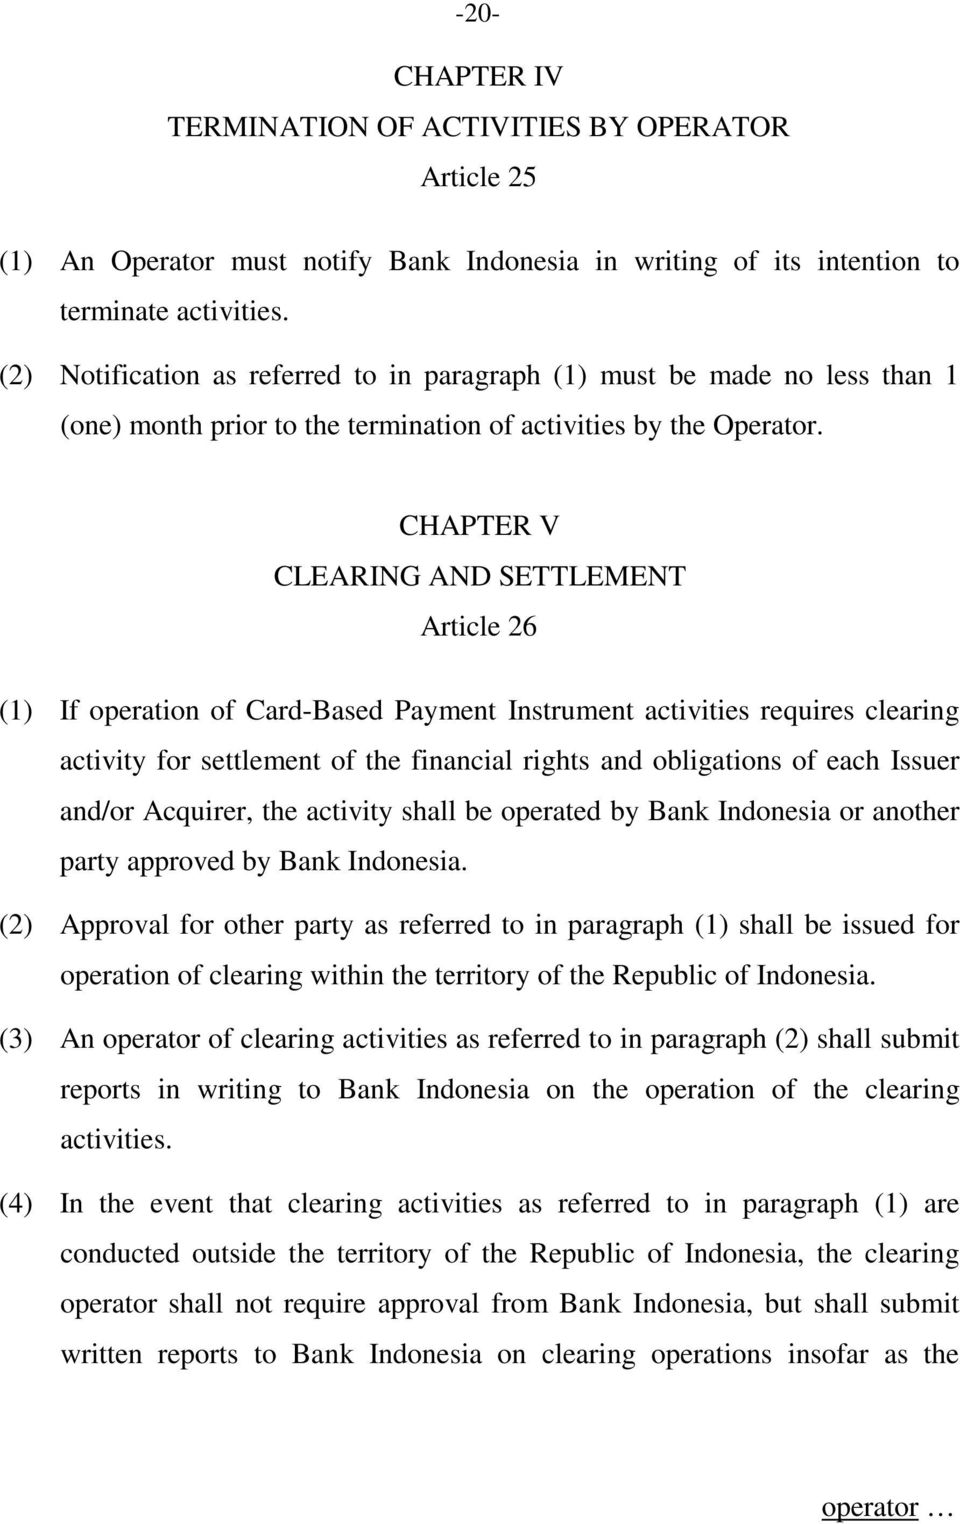 CHAPTER V CLEARING AND SETTLEMENT Article 26 (1) If operation of Card-Based Payment Instrument activities requires clearing activity for settlement of the financial rights and obligations of each